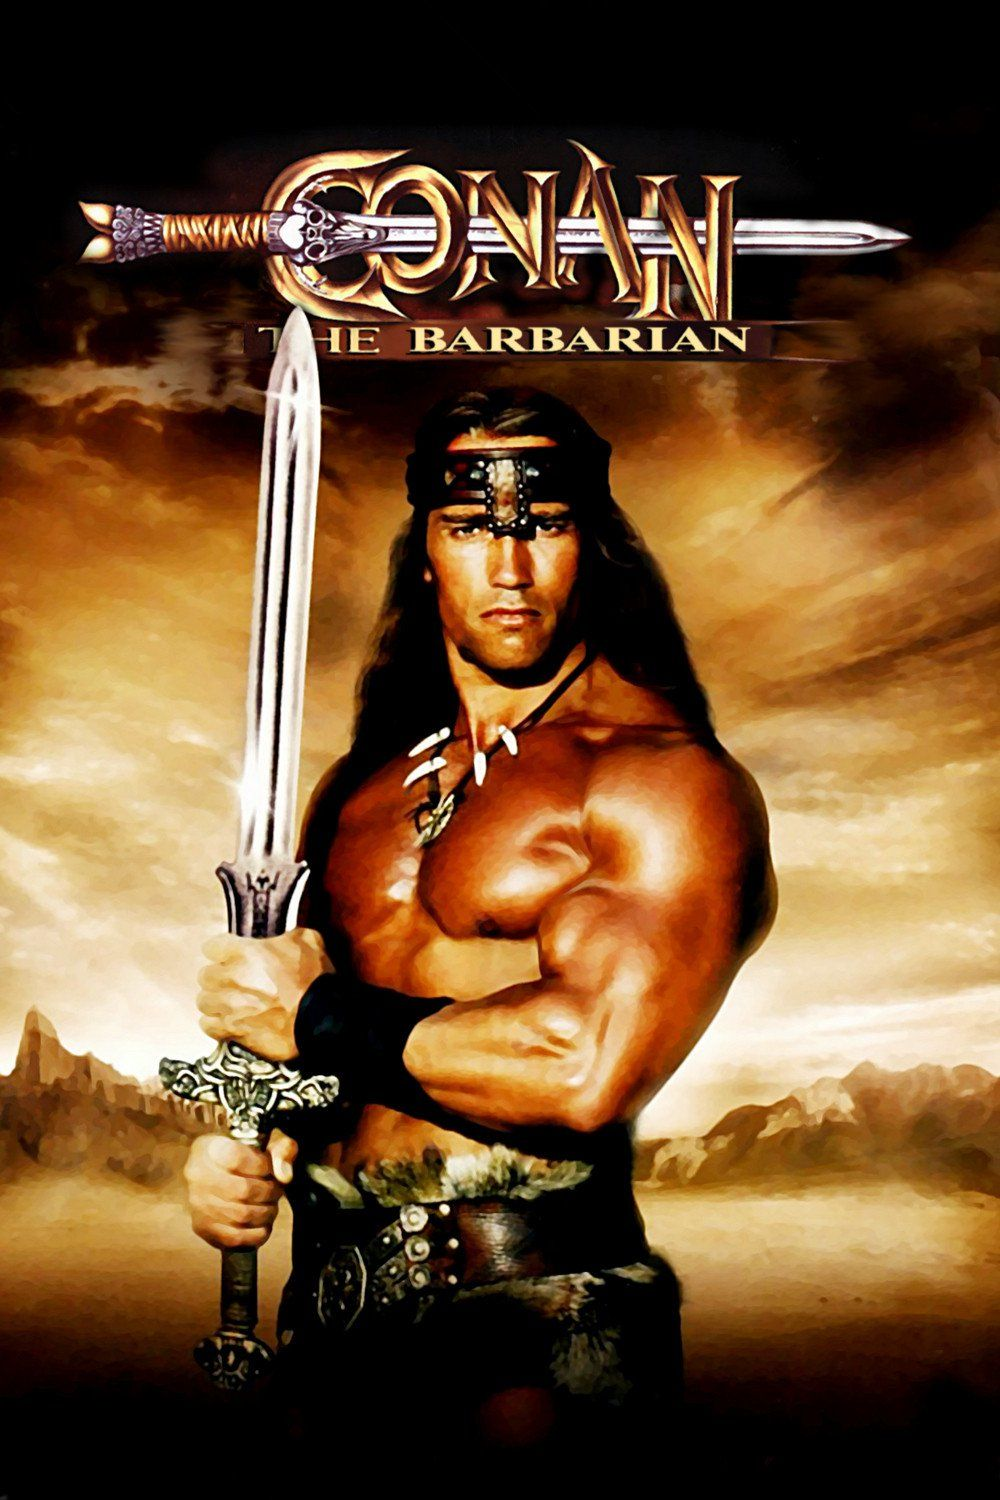 Conan the Barbarian (1982) - Directed by: John MiliusStarring: Arnold Schwarzenegger, James Earl Jones, Max von Sydow, Sandahl BergmanRated: RRunning Time: 2 h 9 mTMM Score: 2 stars out of 5STRENGTHS: Production Design, Some ActionWEAKNESSES: Acting, Writing, Story, Aged Poorly